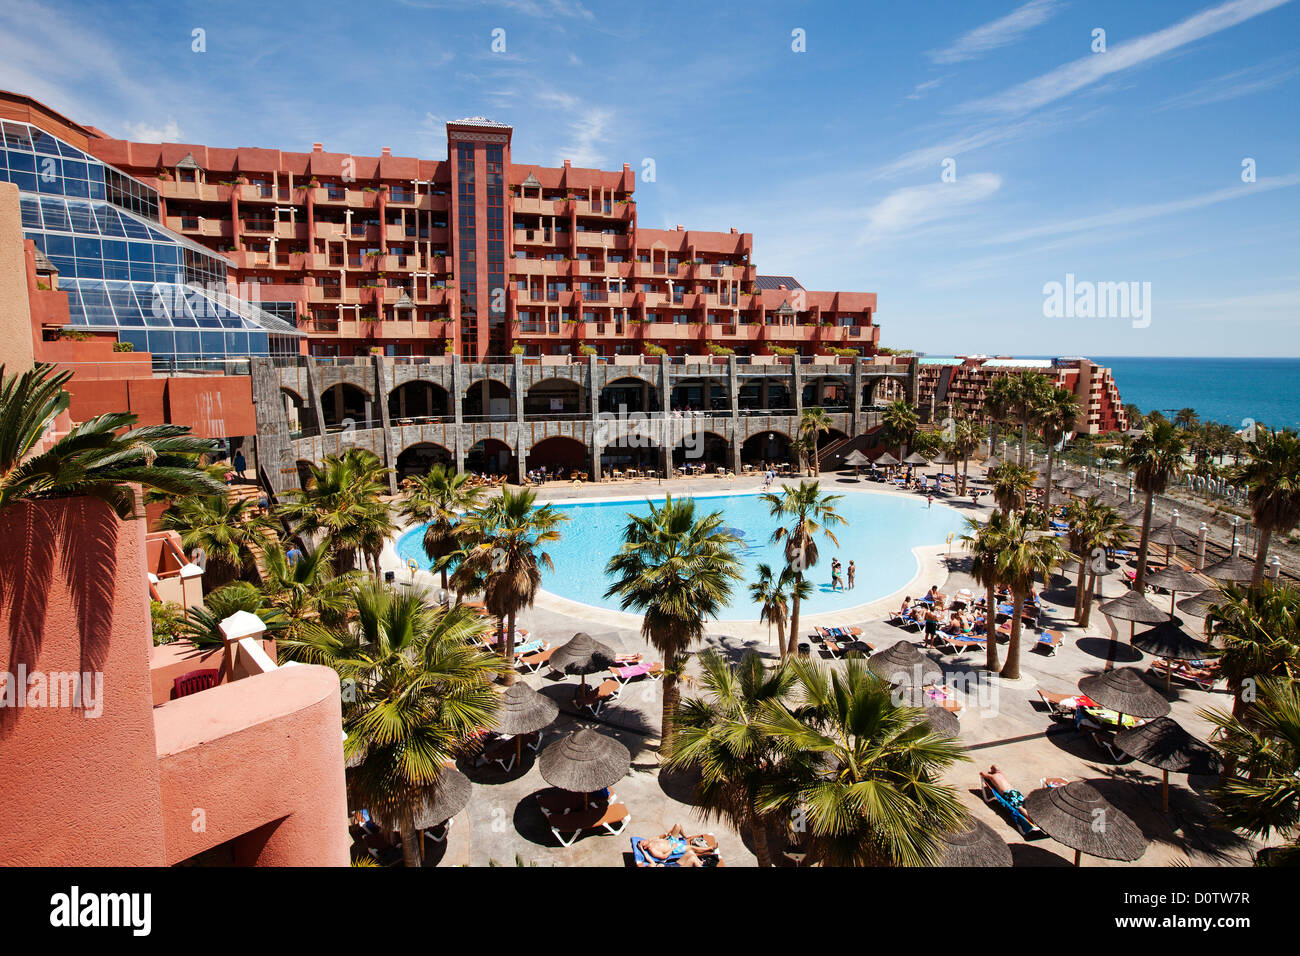 Spain casino resort